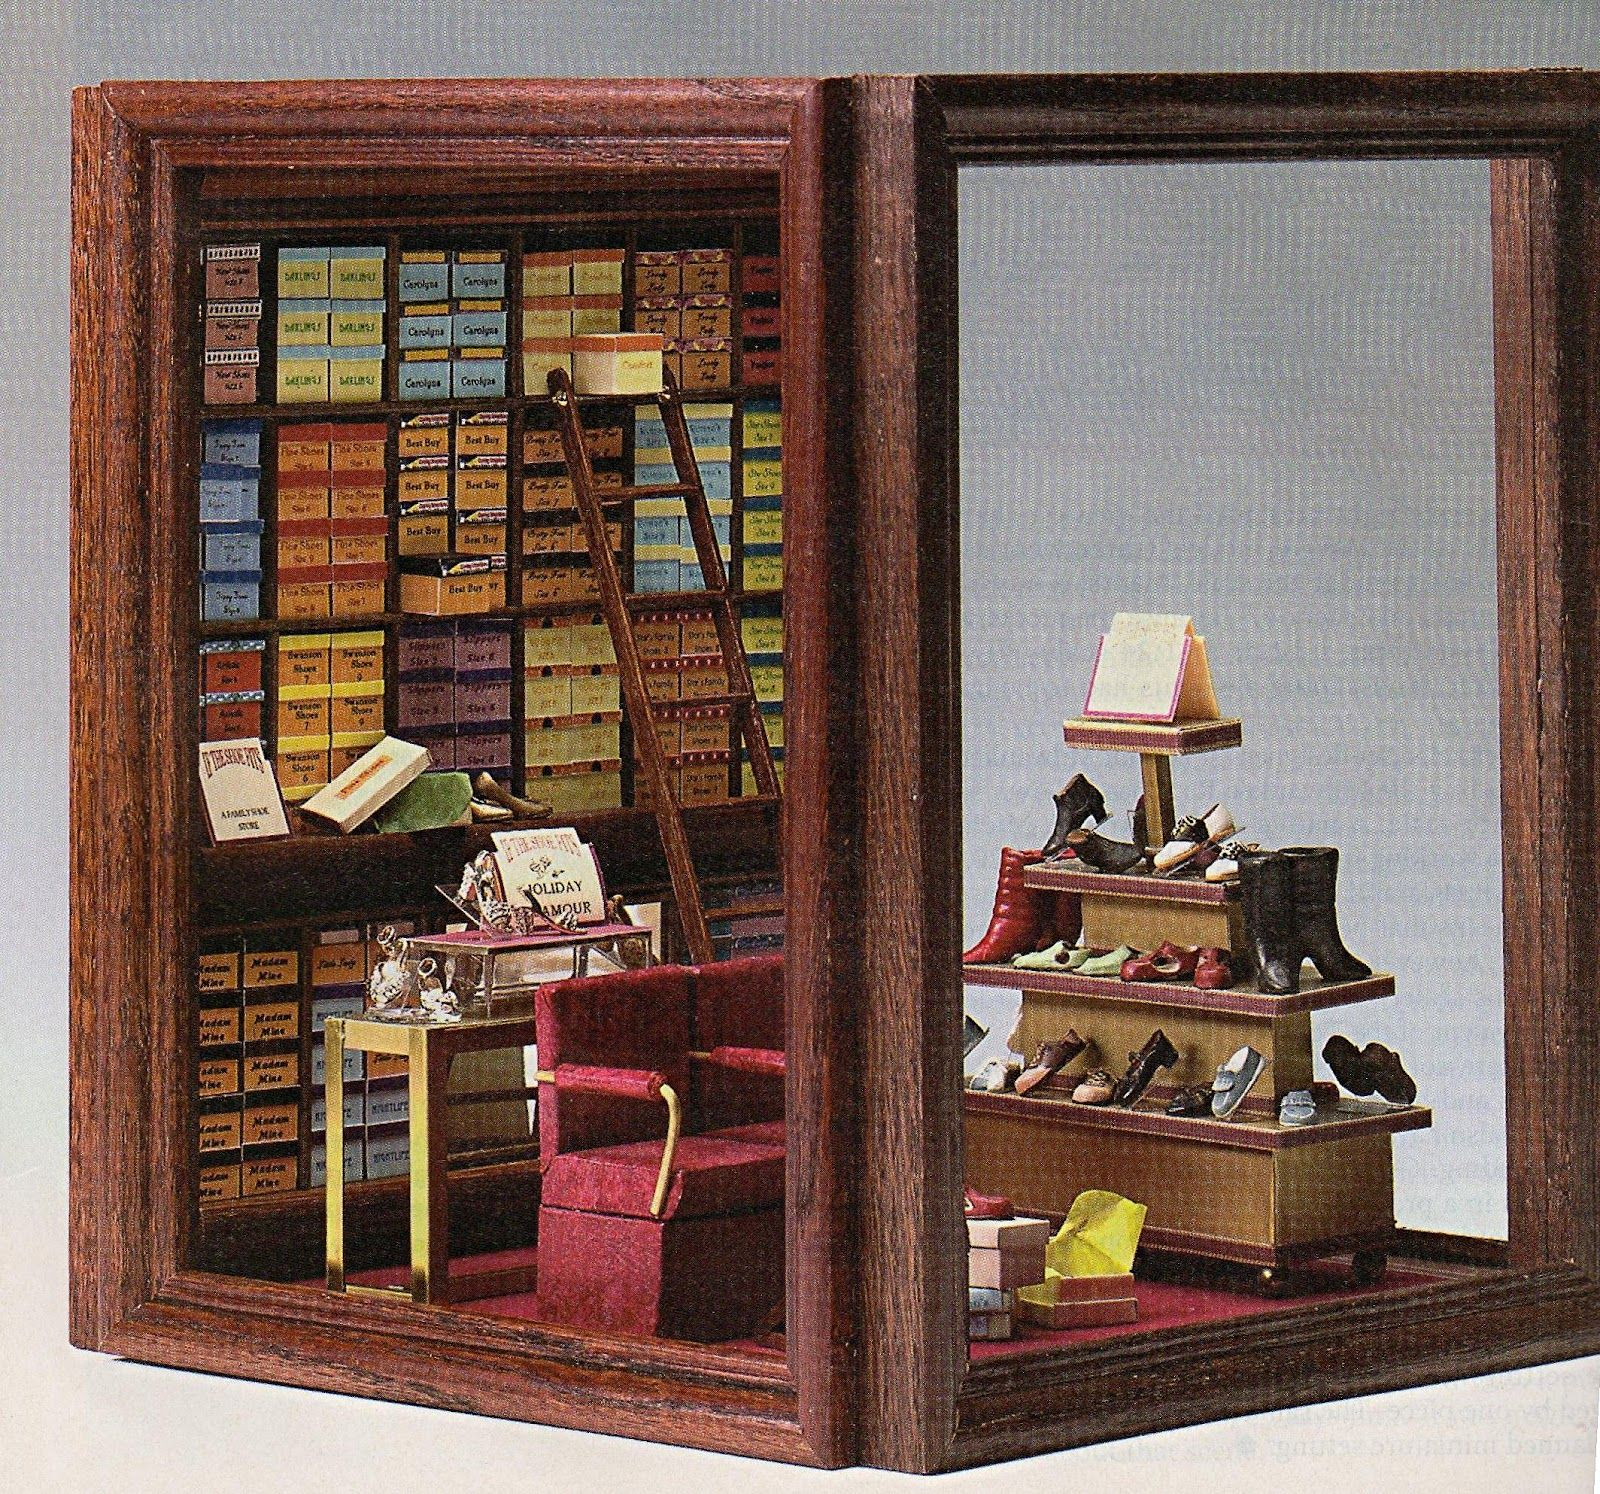 DYI DOLLHOUSE MINIATURES: MAKING ROOMS & DISPLAY BOXES